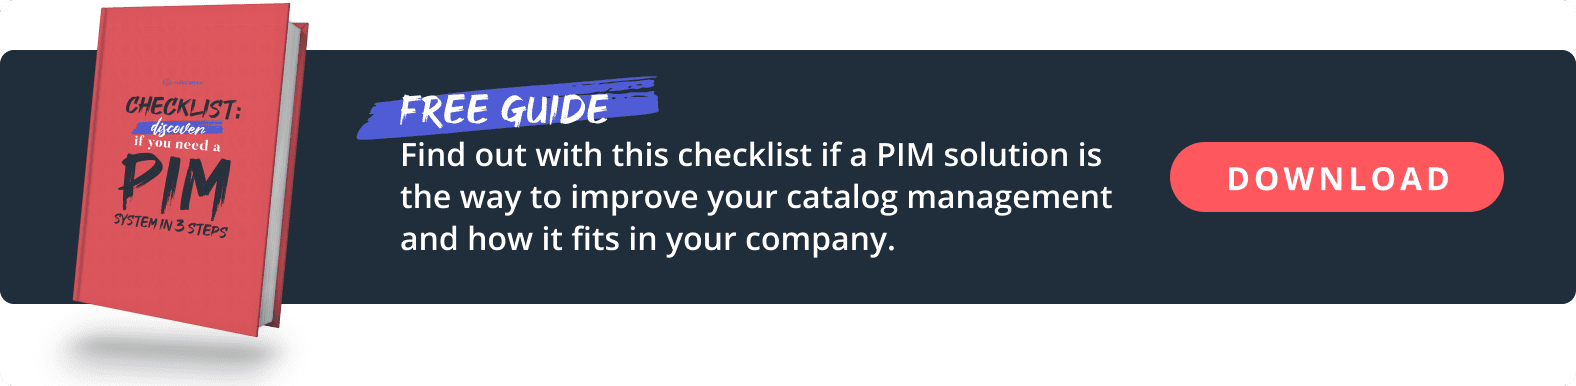 Checklist to discover if you need a PIM system in 3 steps